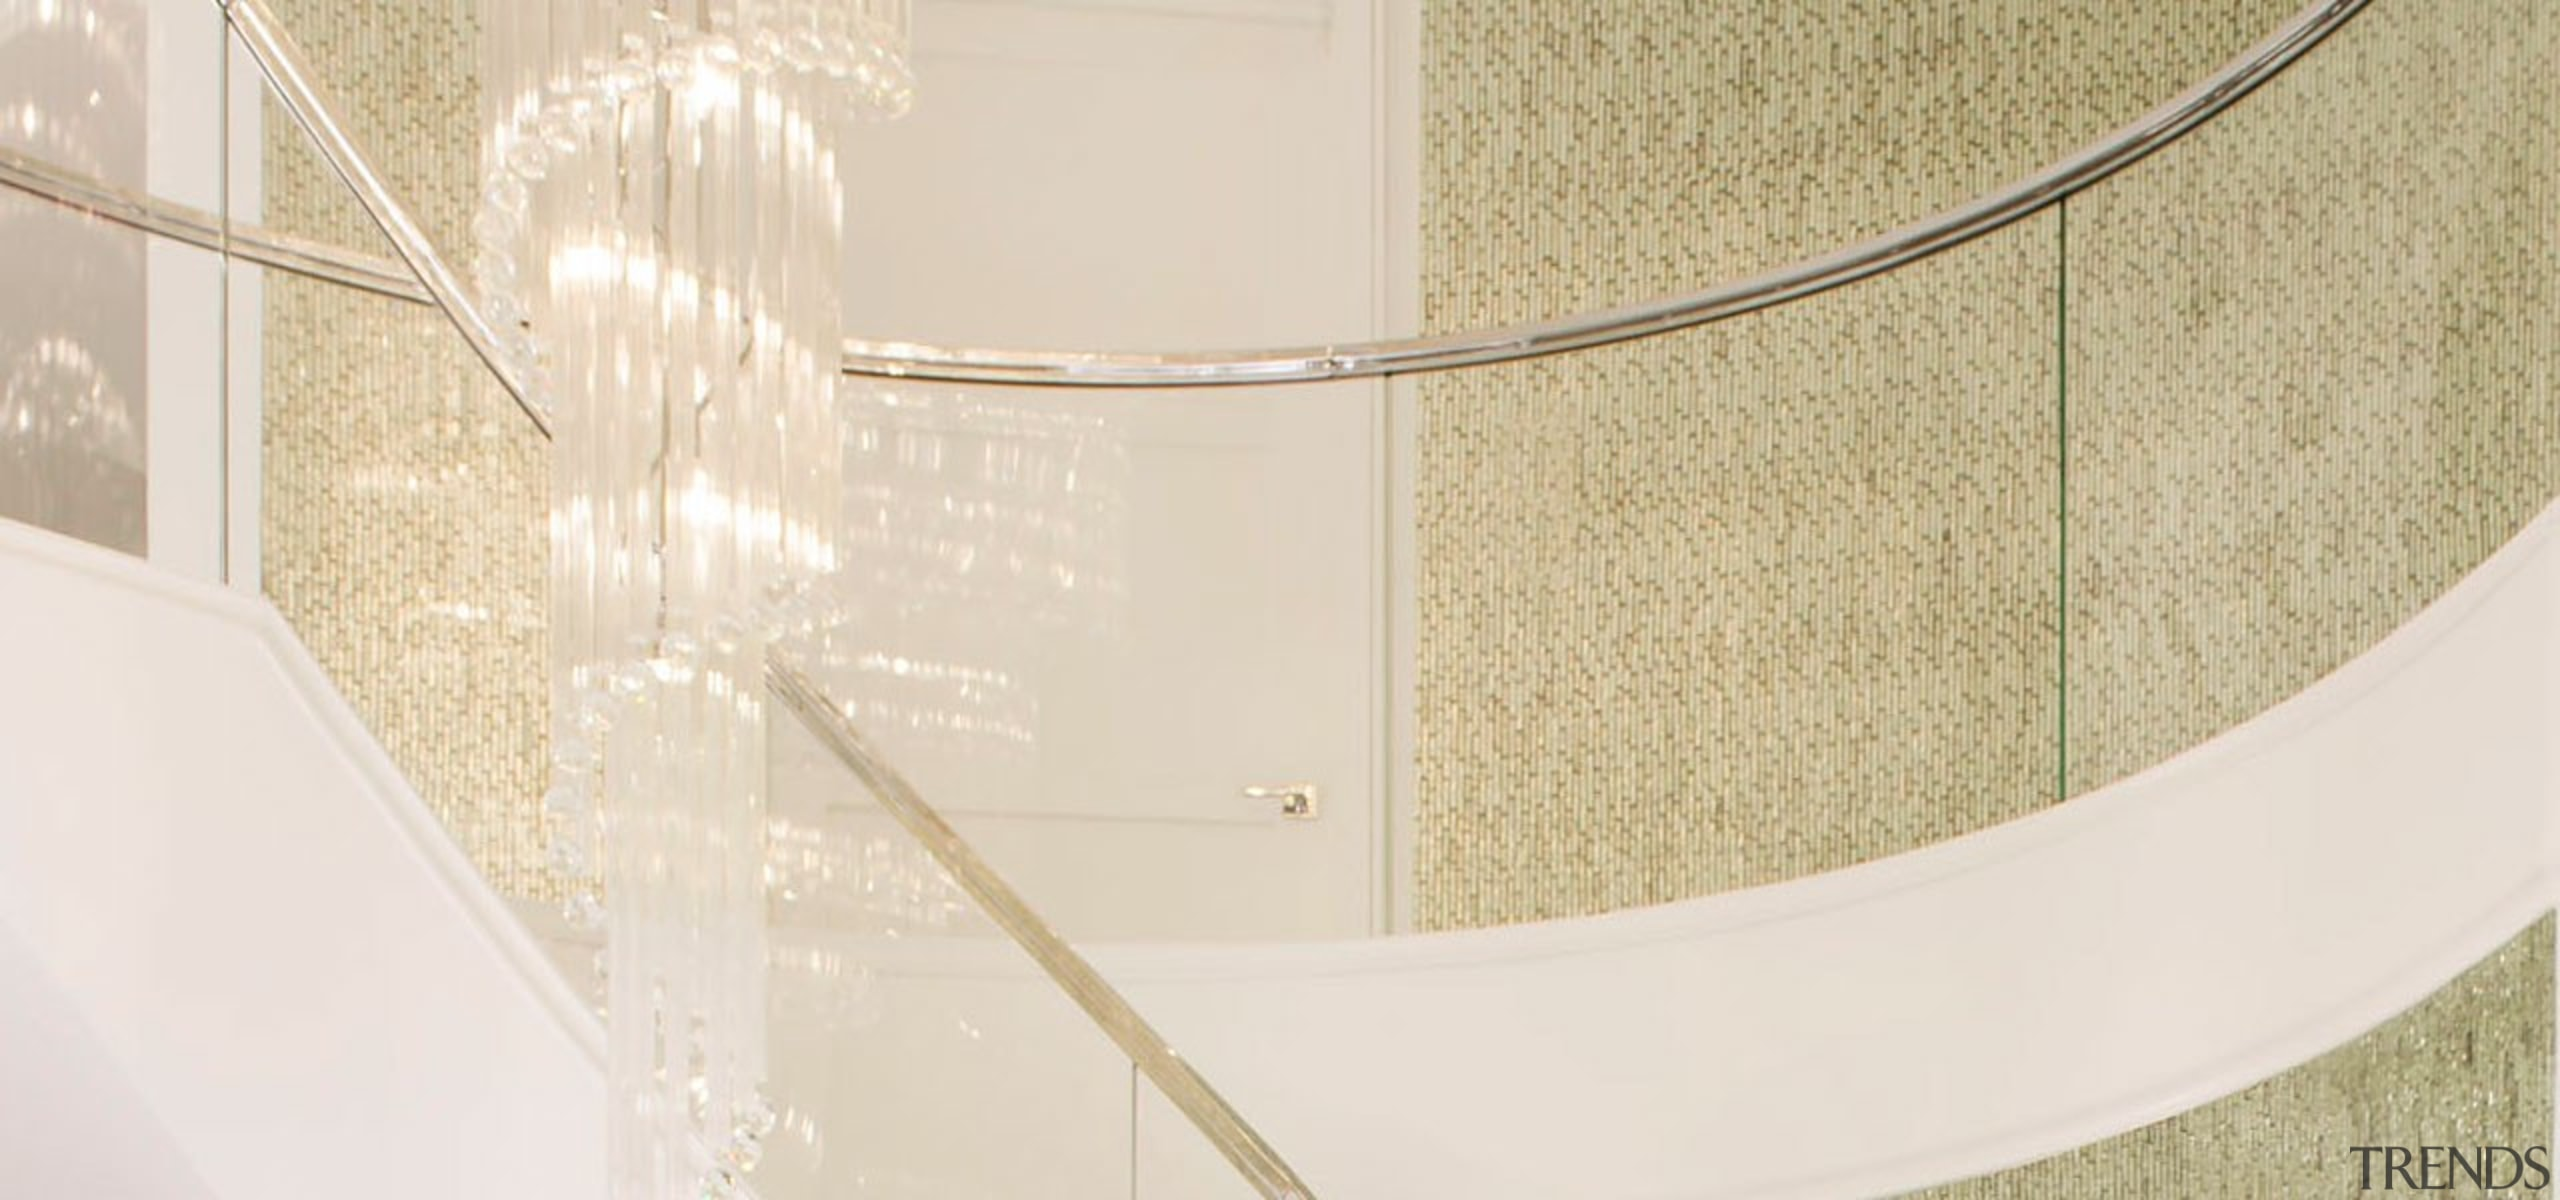 Glasshouse Products 1 - beige | ceiling | beige, ceiling, glass, lampshade, lighting accessory, product, room, white, white